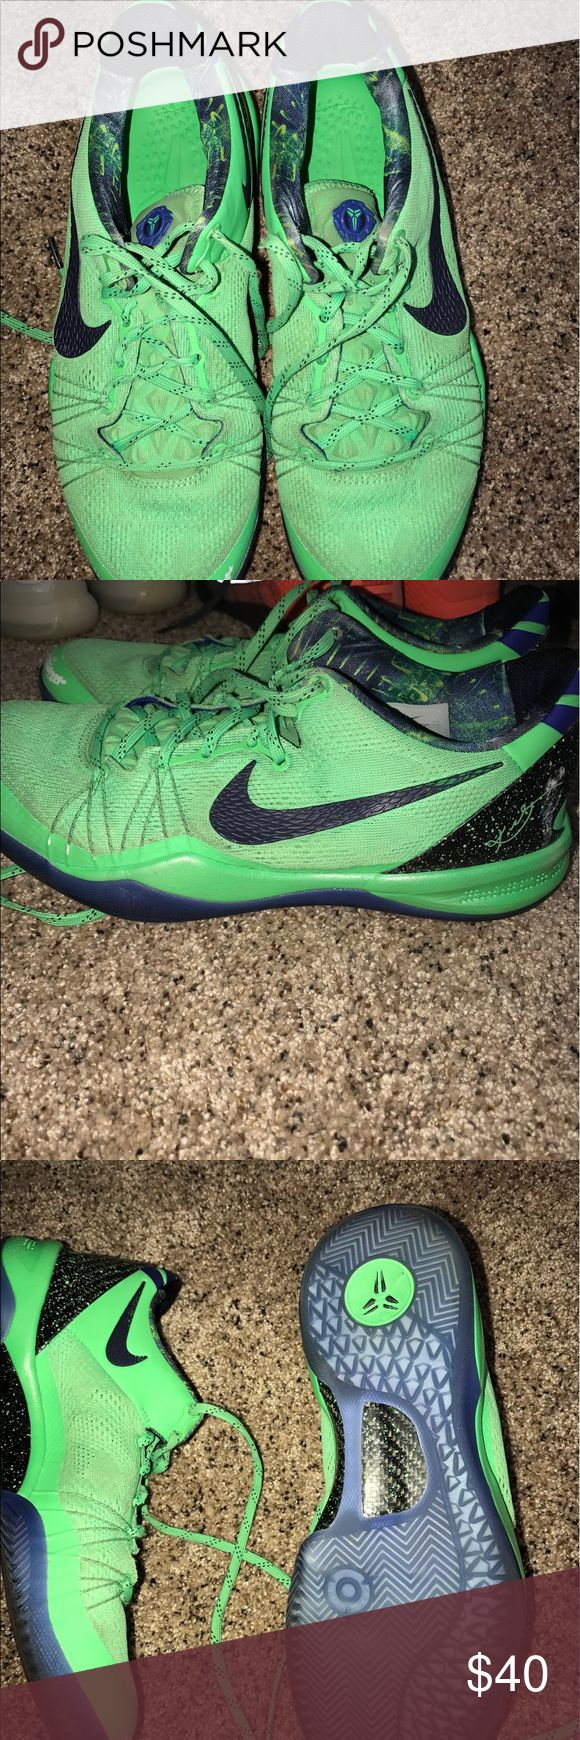 Kobe basketball shoes size 9.5 in men's I love these shoes they have been worn a good bit Nike Shoes Athletic Shoes